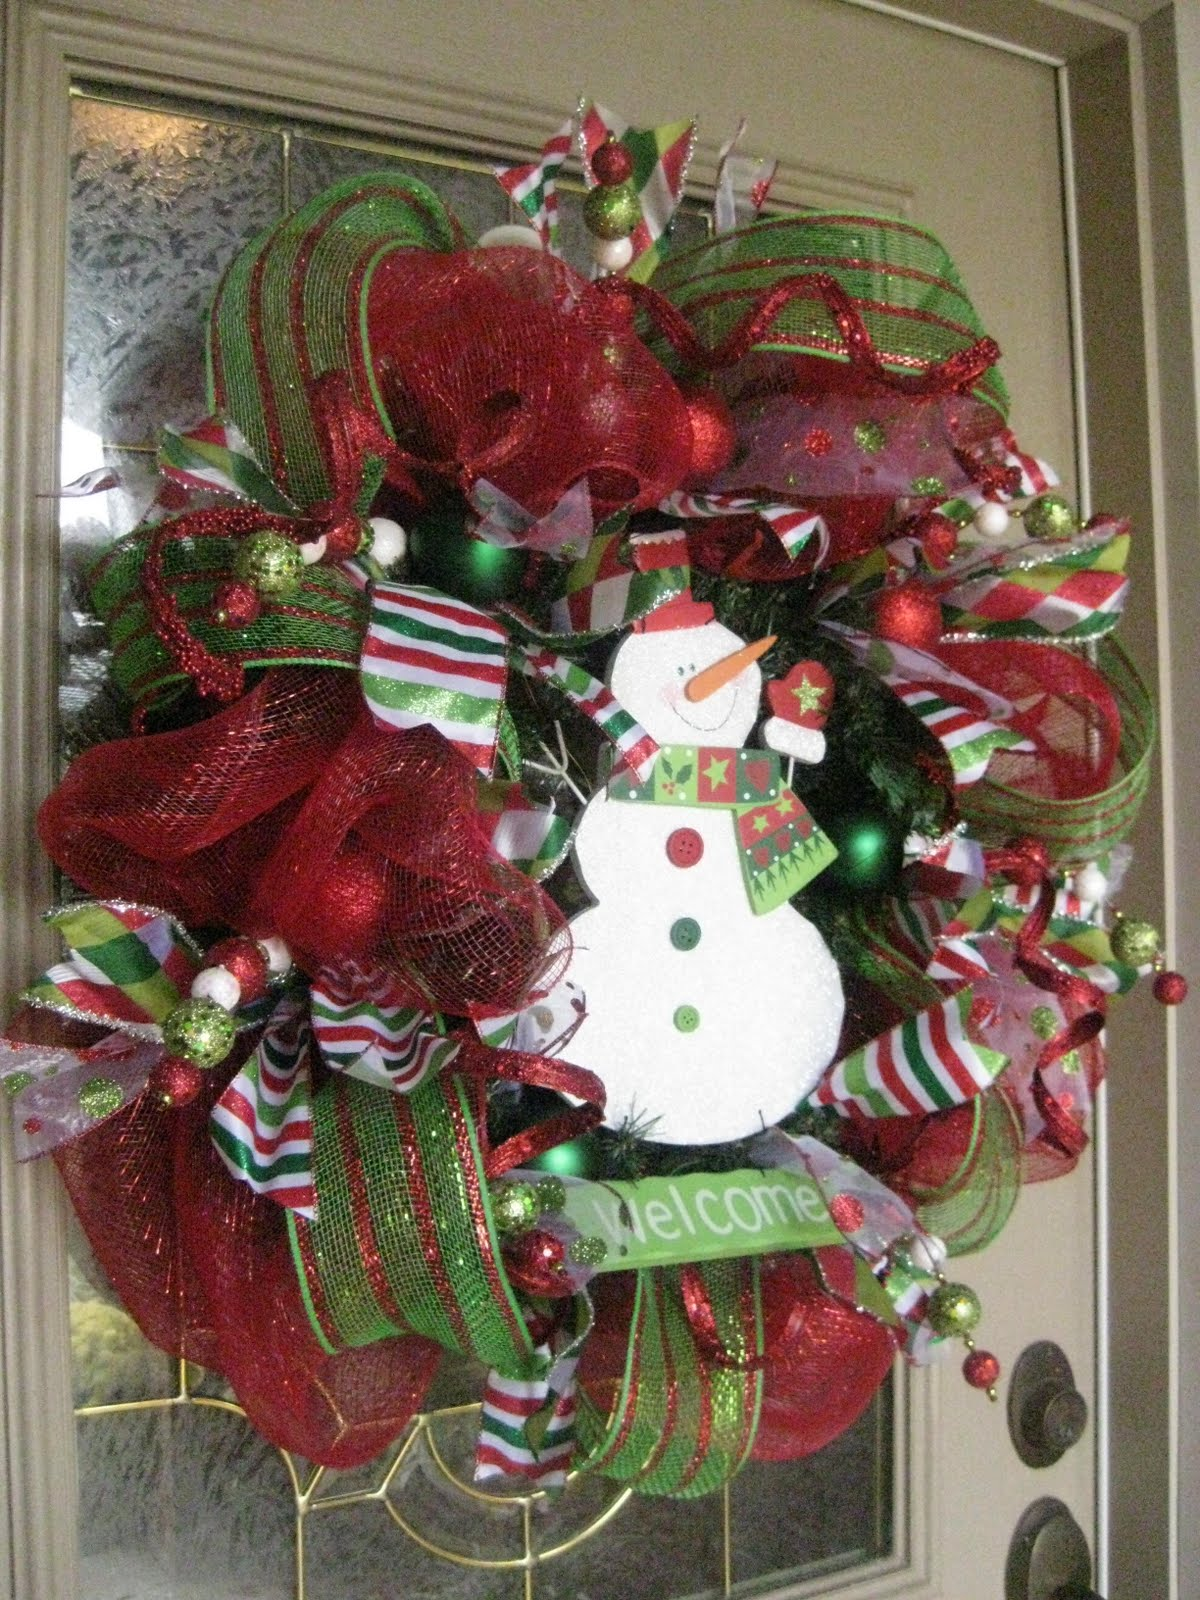 Kristen s Creations  Christmas Mesh Wreath Tutorial  Christmas Mesh Wreath Tutorial